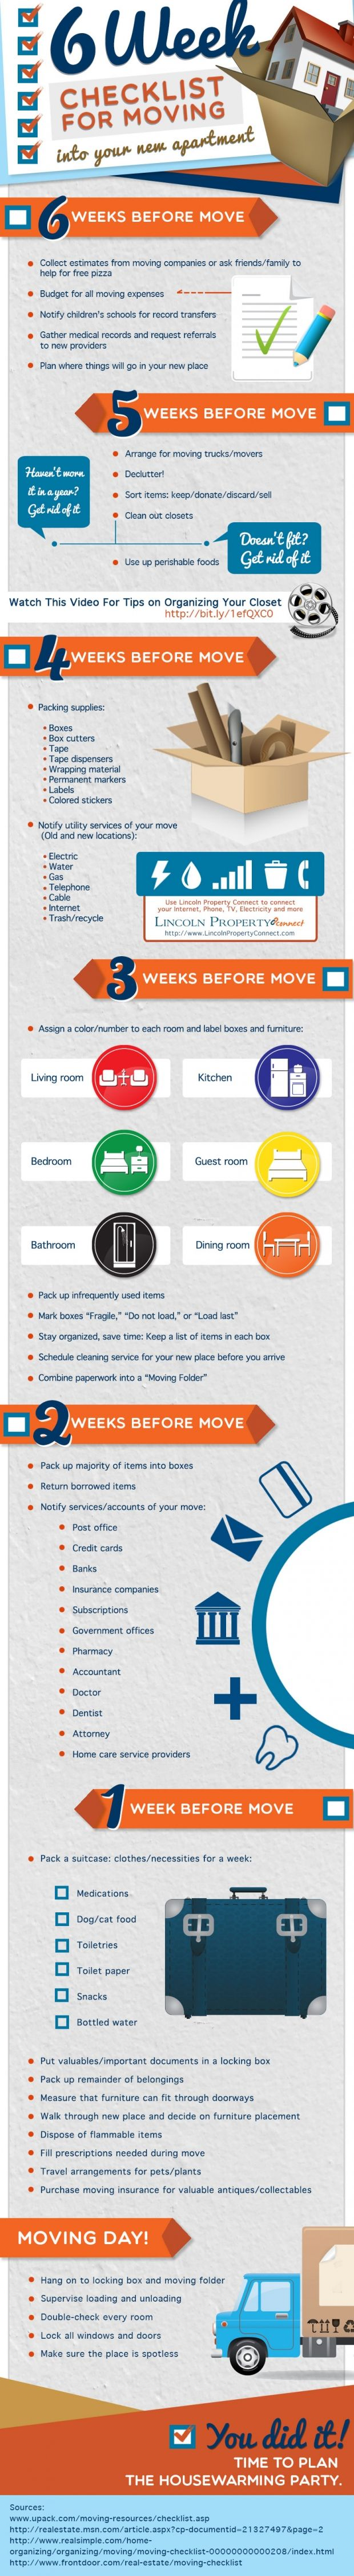 Week Checklist For Moving Into Your New Apartment Infographic